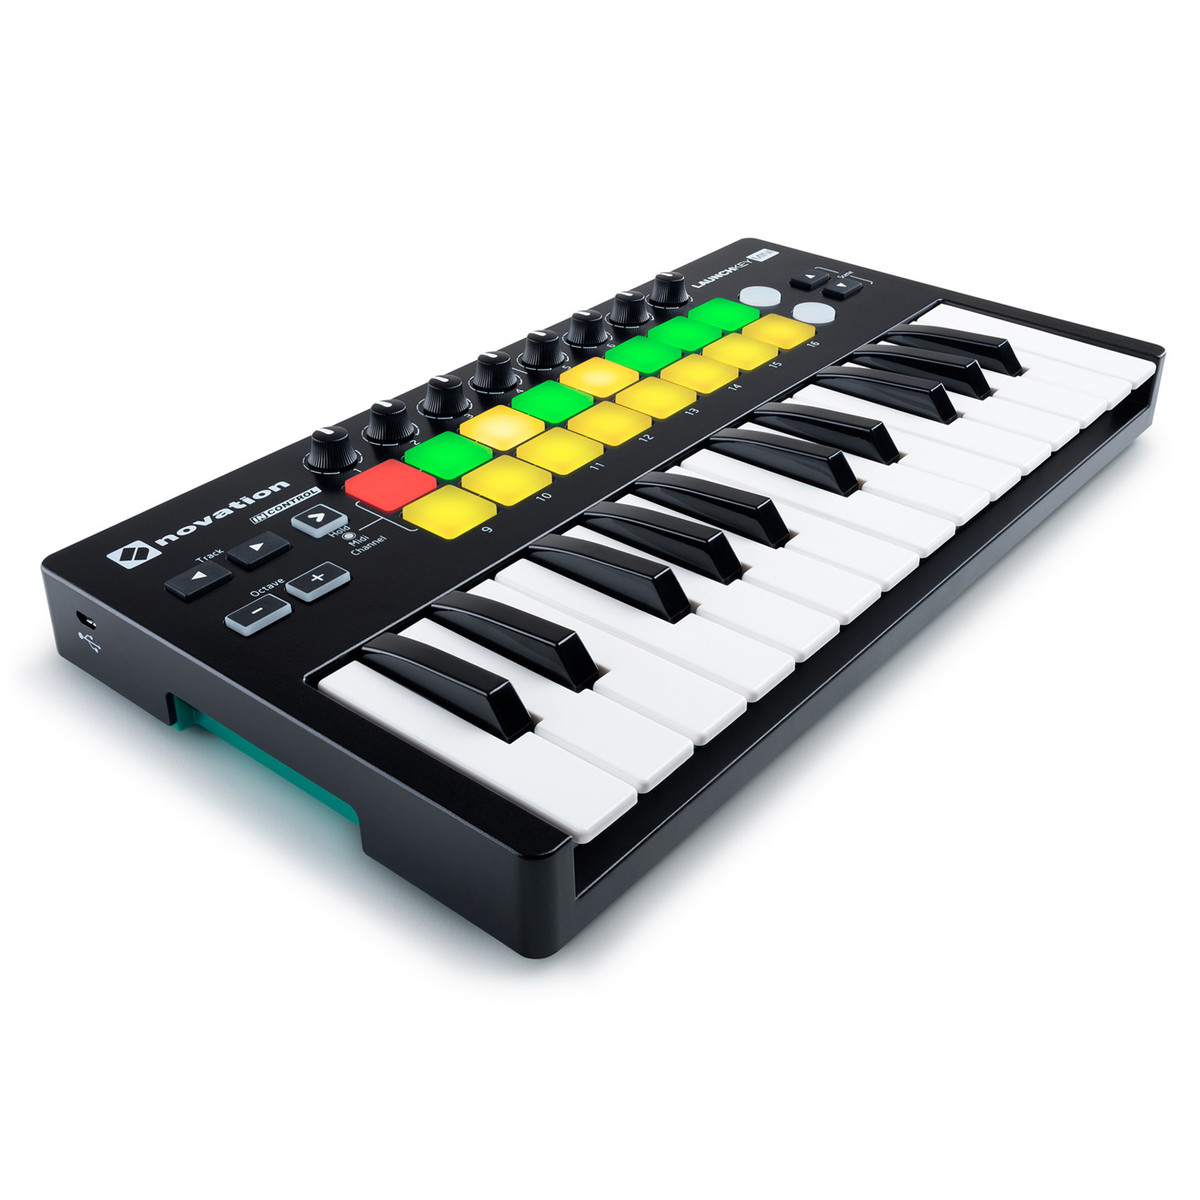 Launchkey Mini Mk2 : novation launchkey mini mk2 midi controller keyboard b stock at gear4music ~ Hamham.info Haus und Dekorationen